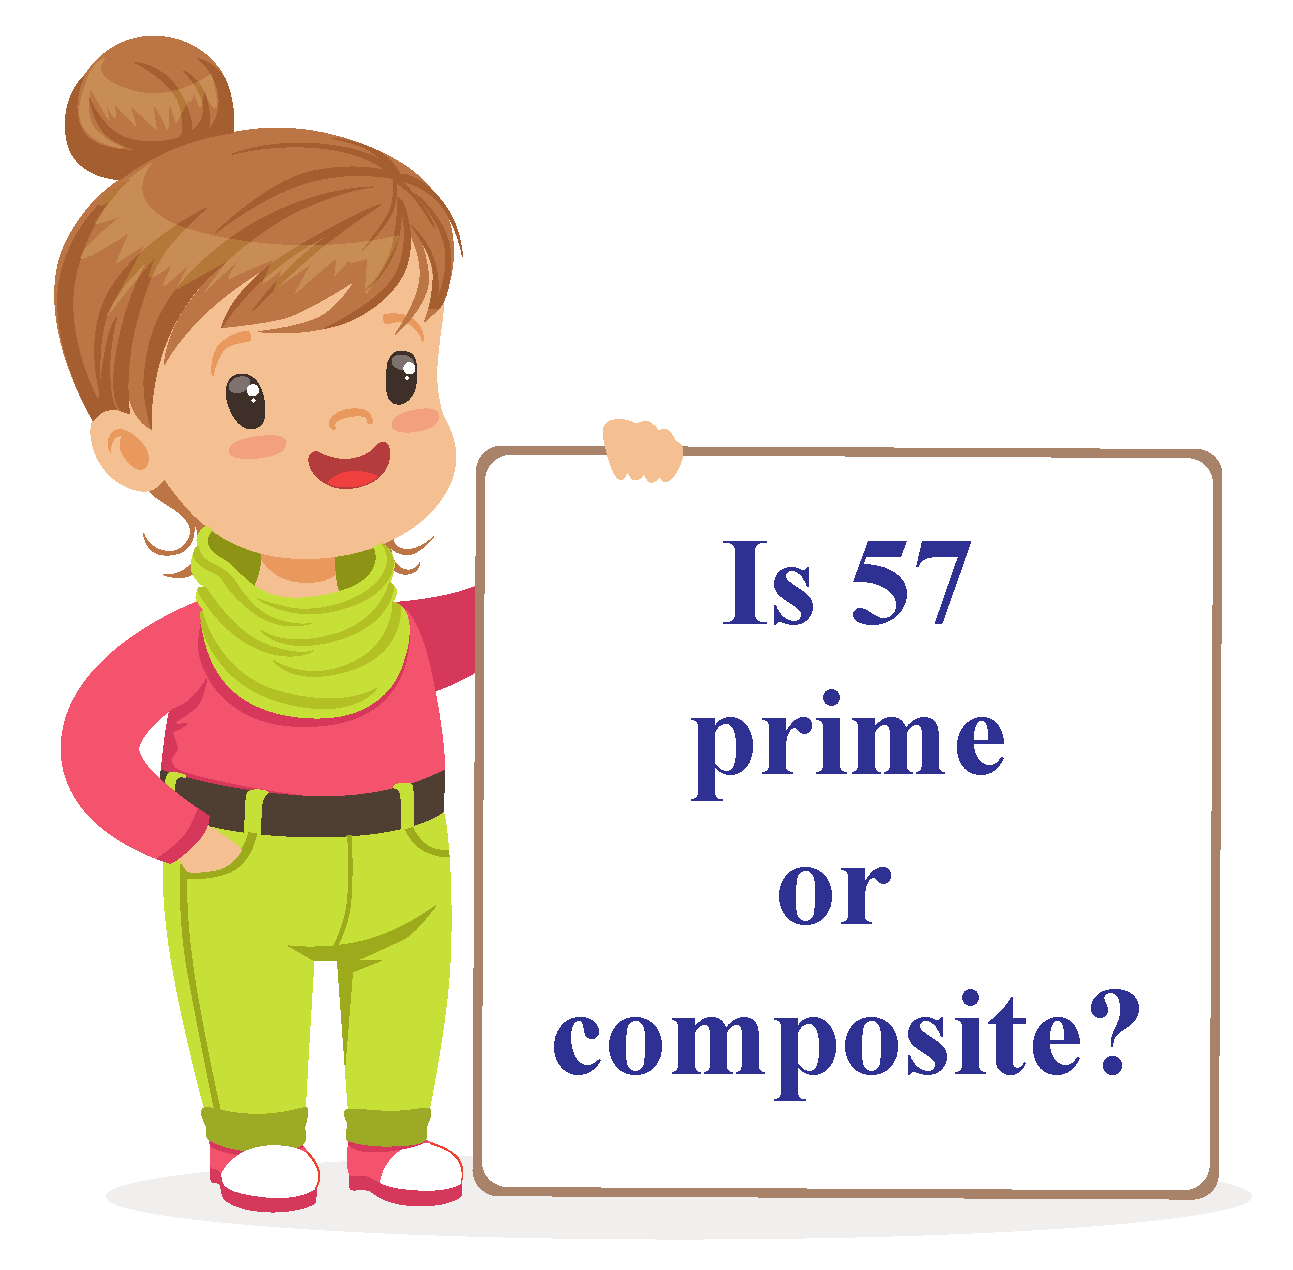 is 57 a prime number?